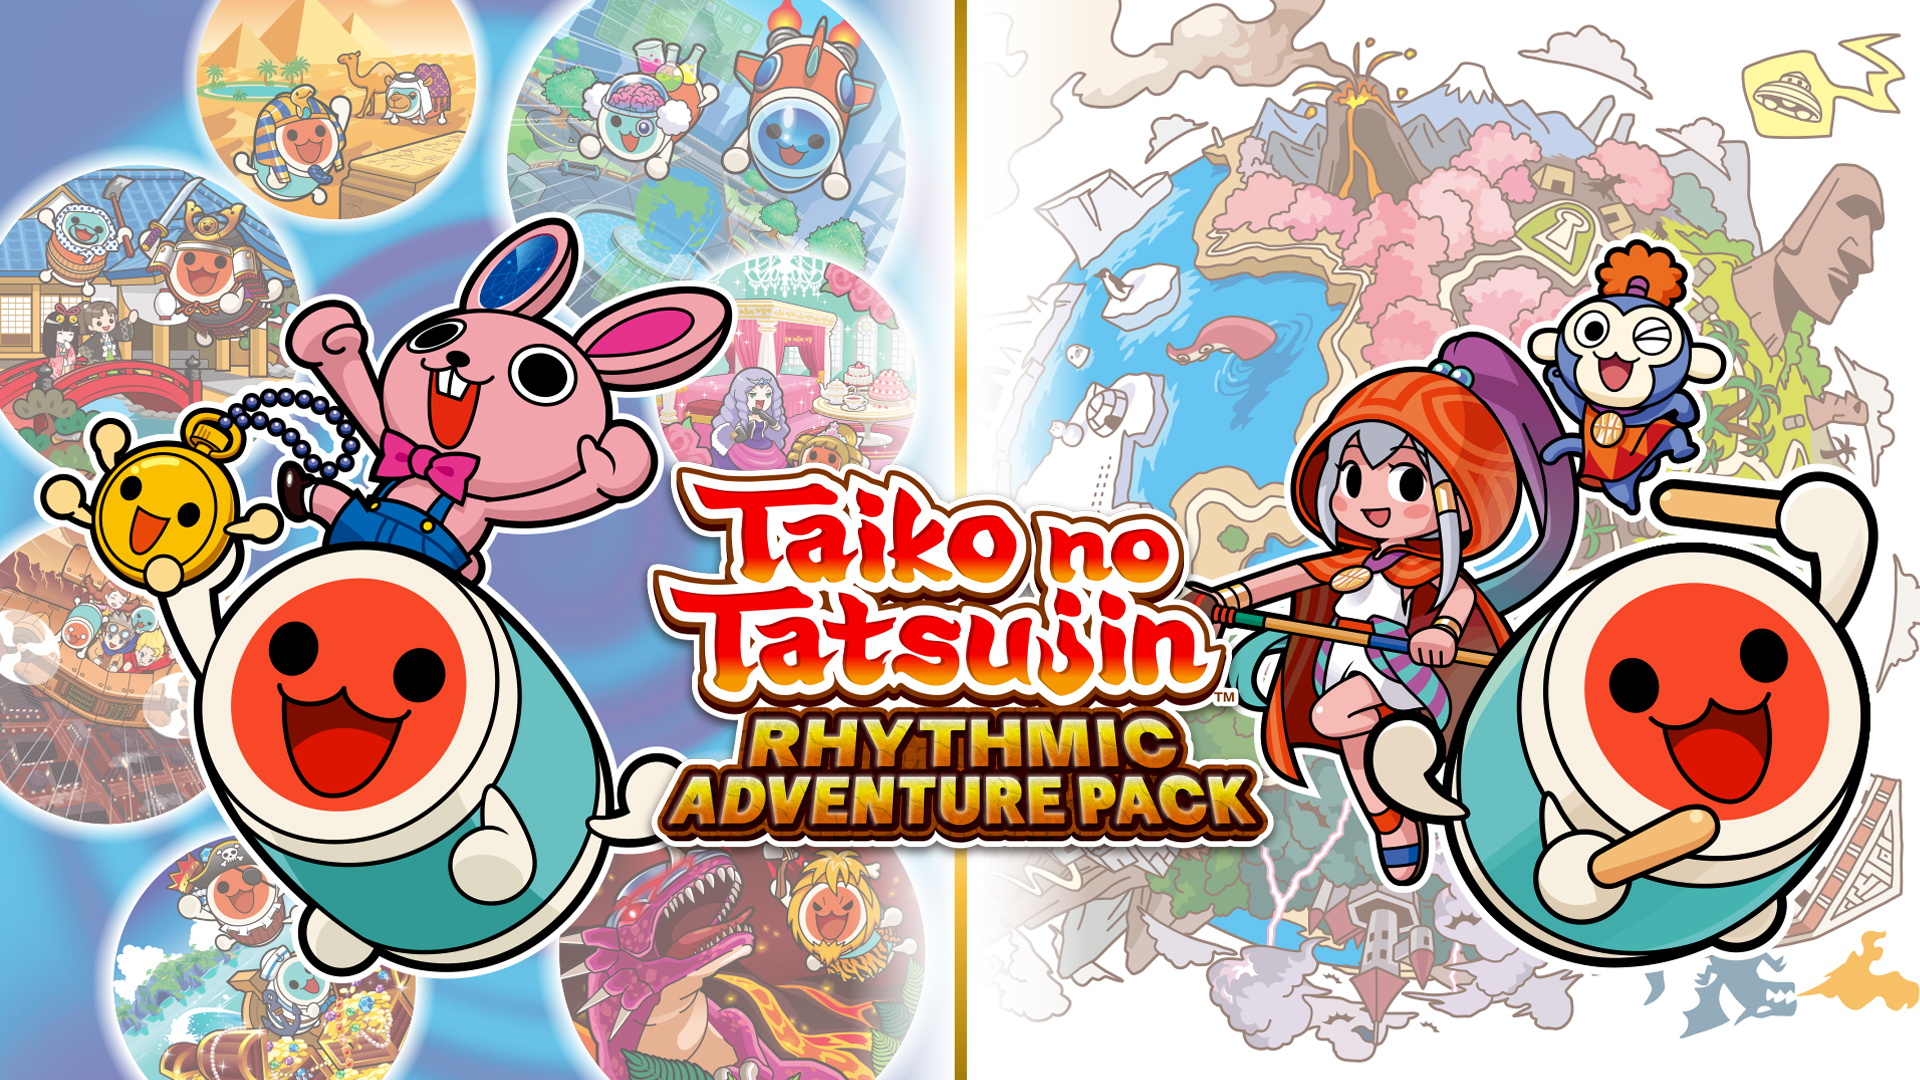 Switch file sizes - Taiko no Tatsujin: Rhythmic Adventure Pack, Shiren the Wanderer, Picross S5, more - Nintendo Everything